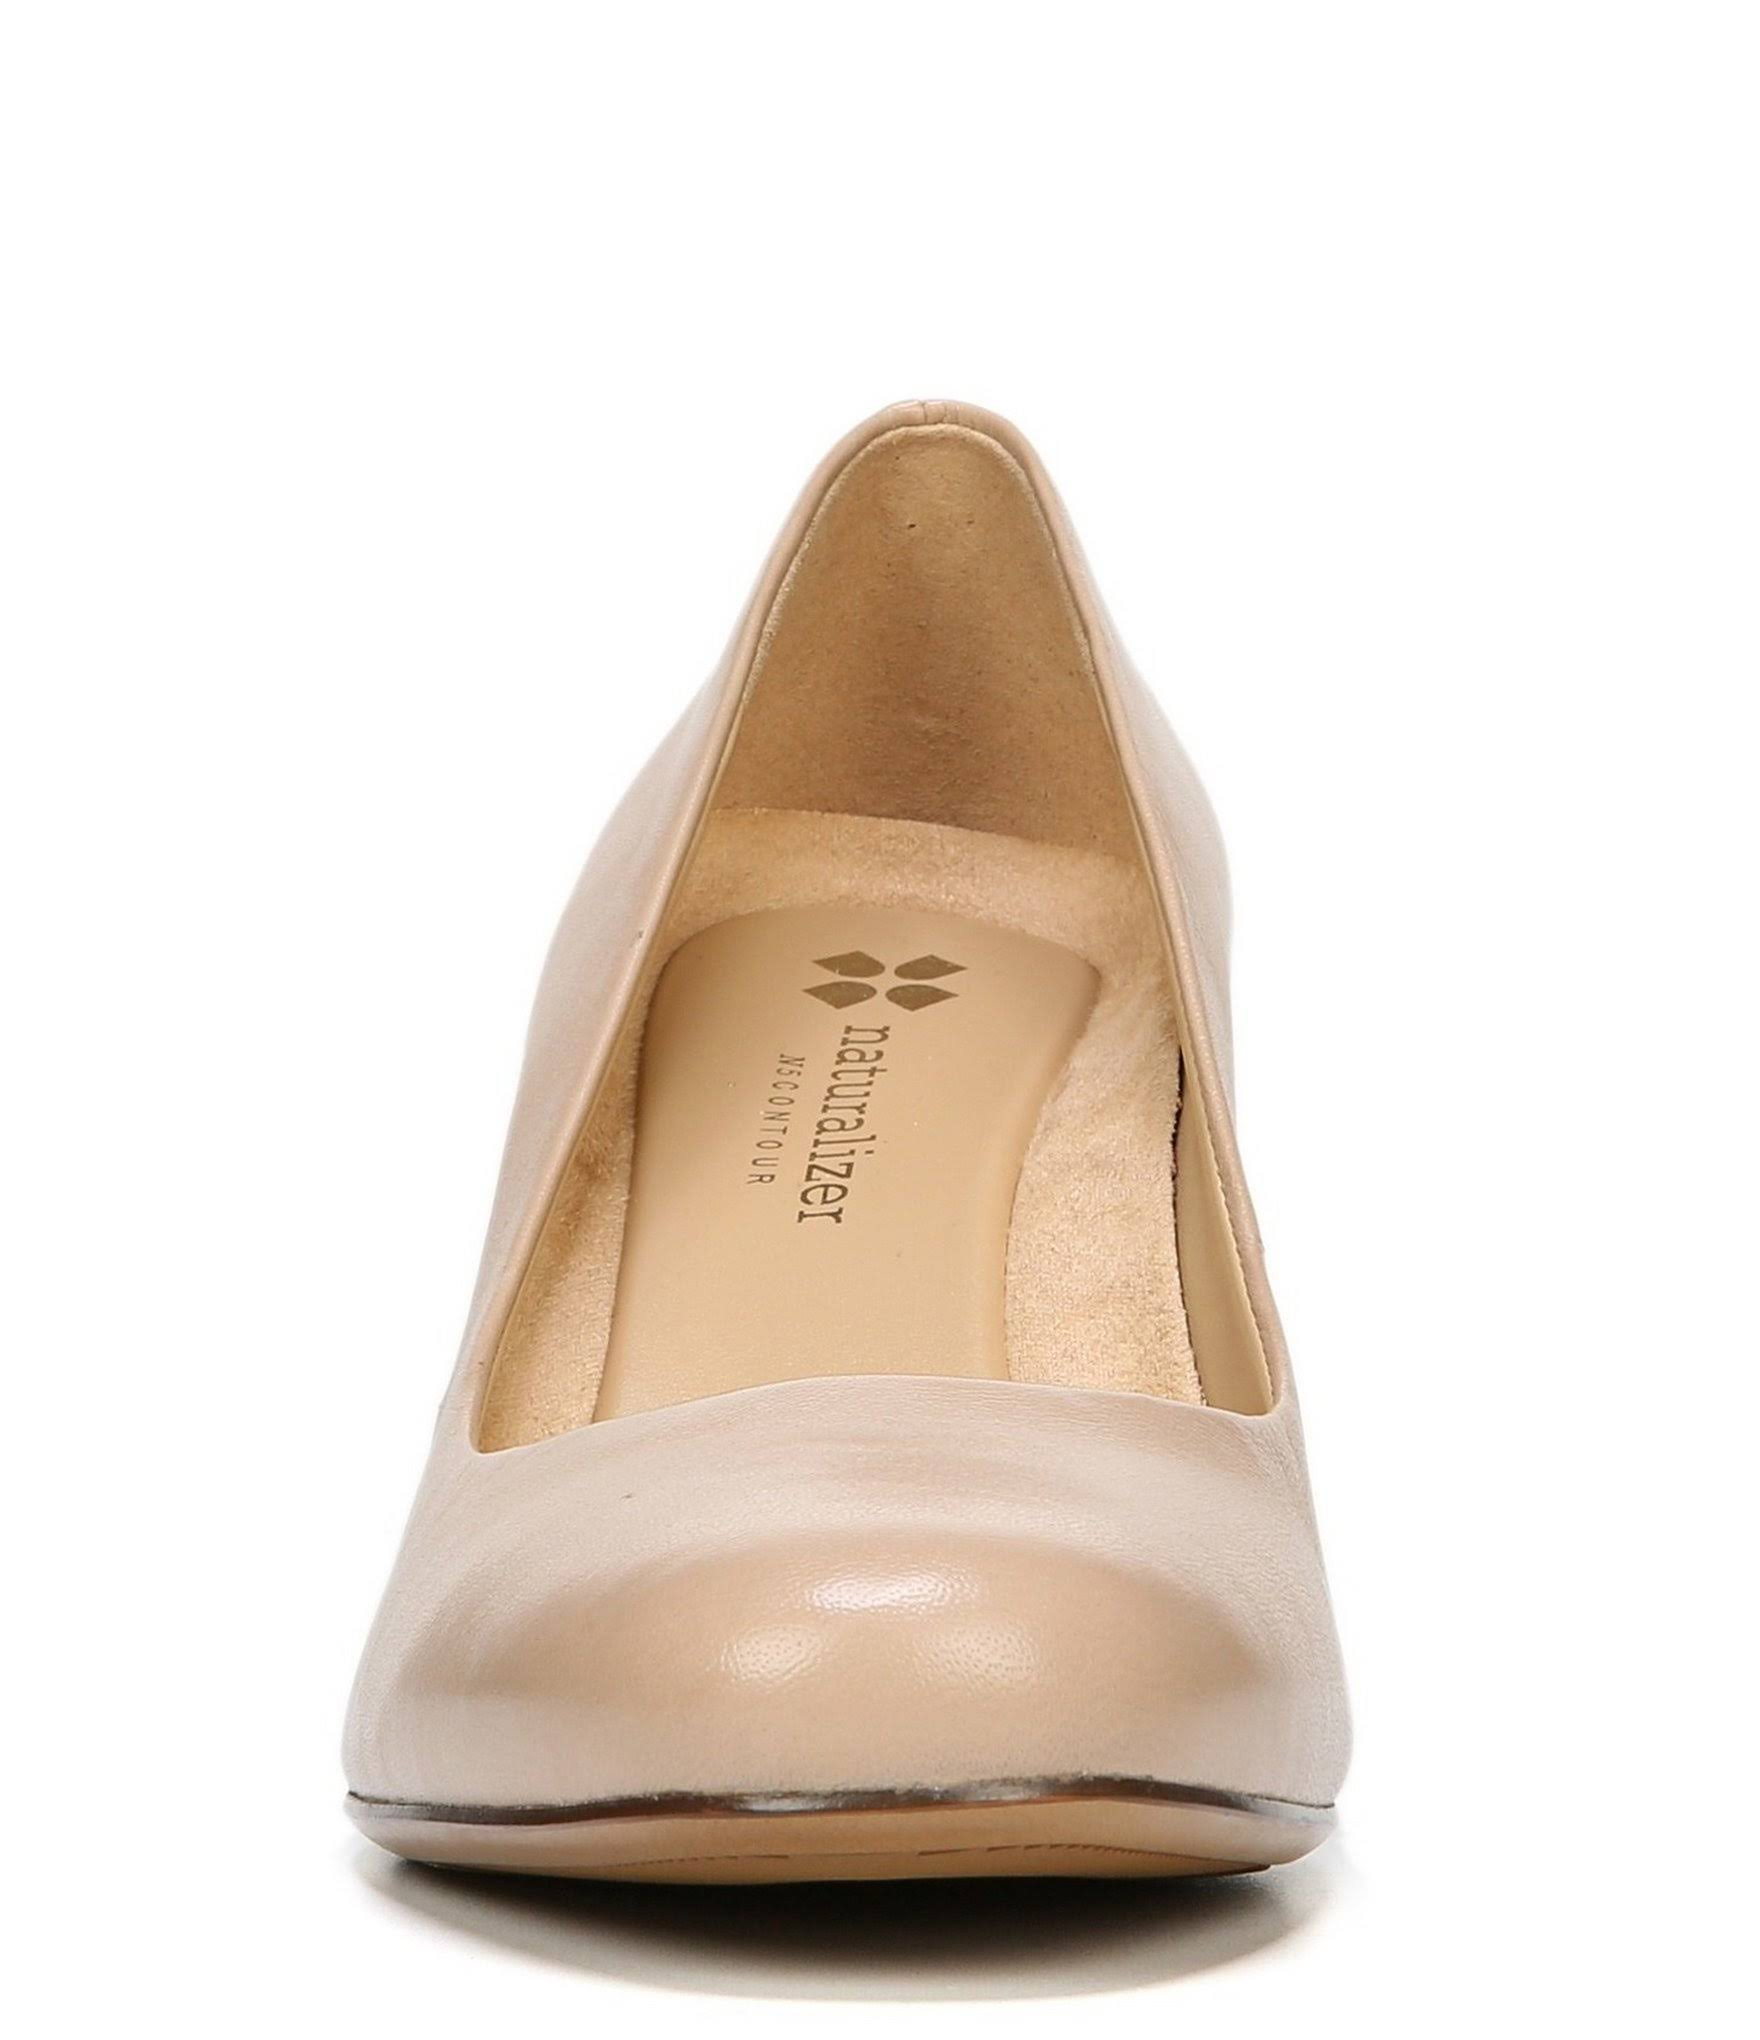 Naturalizer Whitney Naturalizer Naturalizer Whitney Whitney Pumps Whitney Whitney Naturalizer Pumps Pumps Naturalizer Pumps FJclK1T